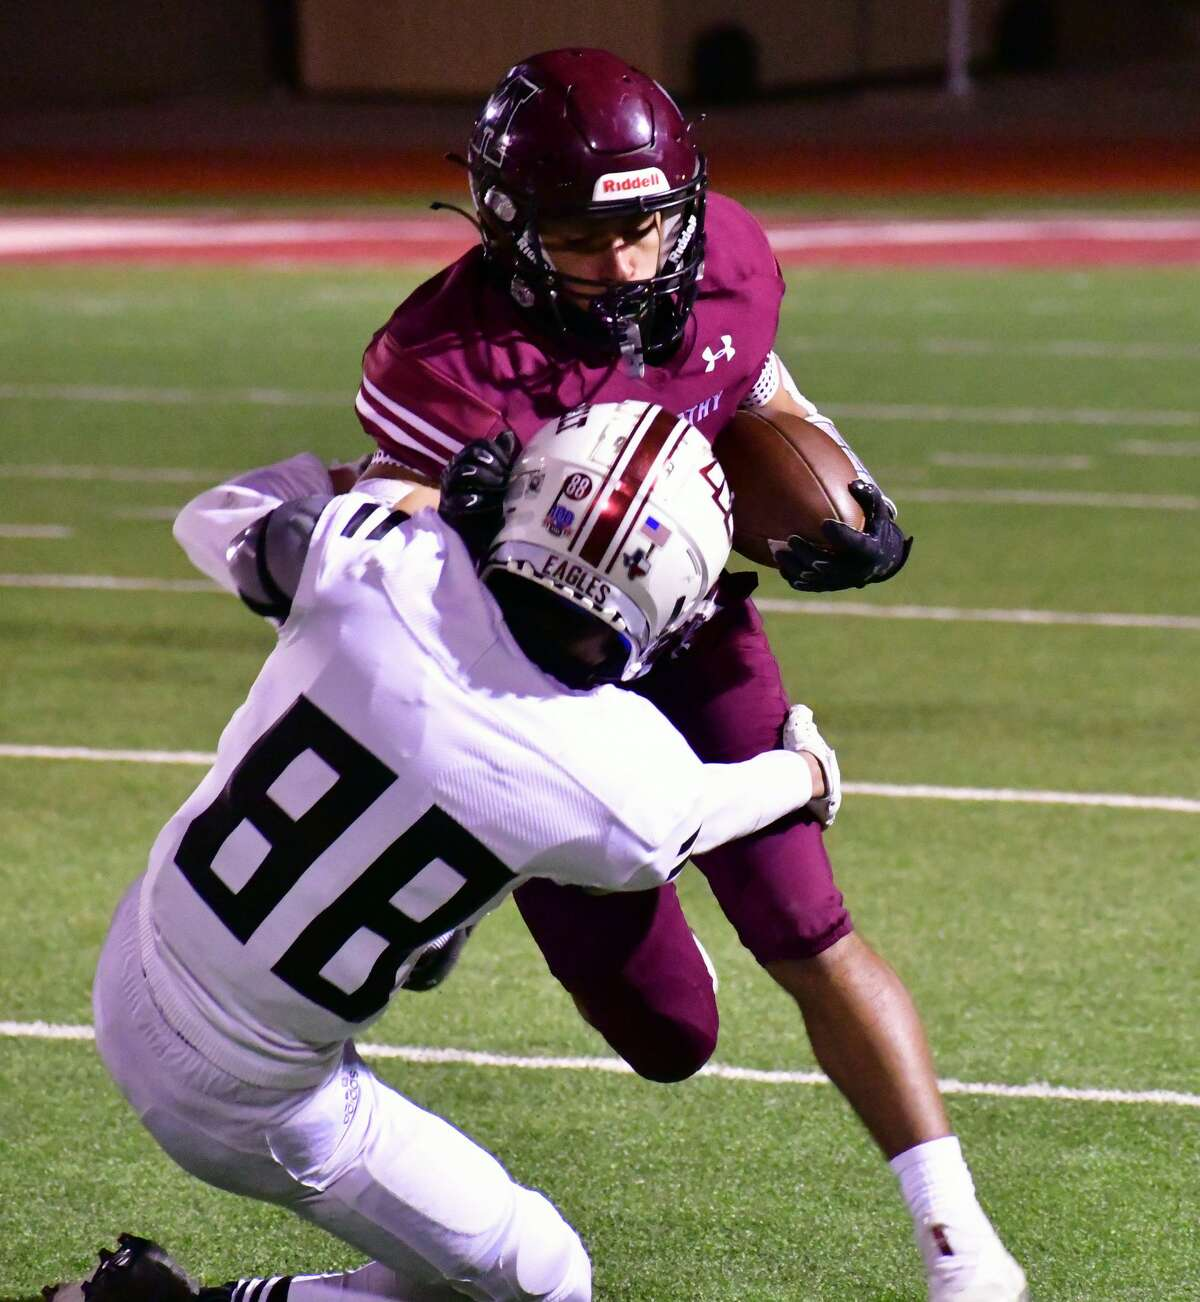 Abernathy defeated Lubbock Roosevelt 28-12 in a District 4-3A Division II football game on Friday, Oct. 23, 2020 in Antelope Stadium in Abernathy.